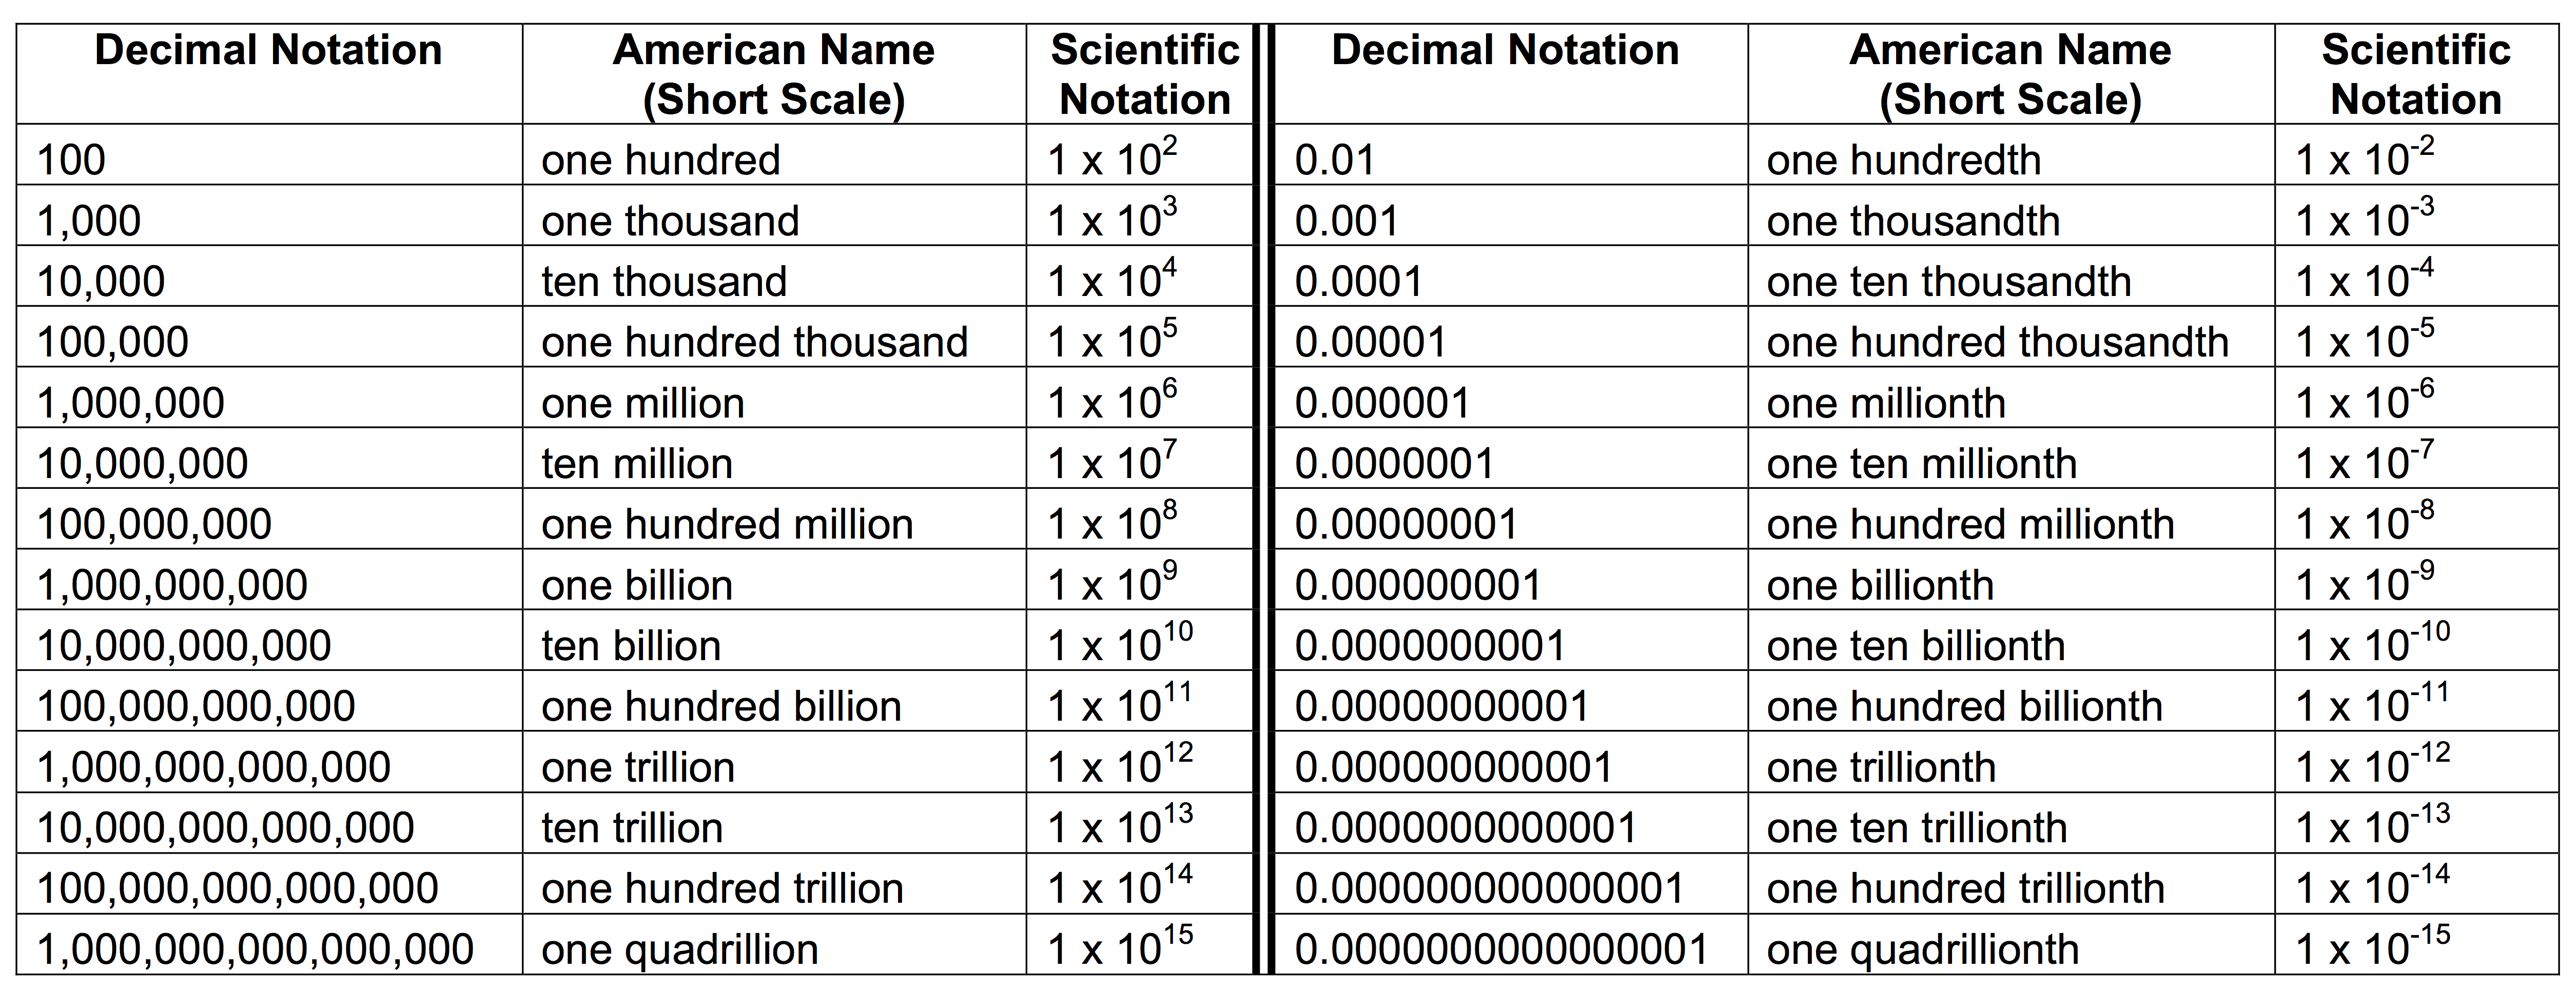 Scientificnotationtable